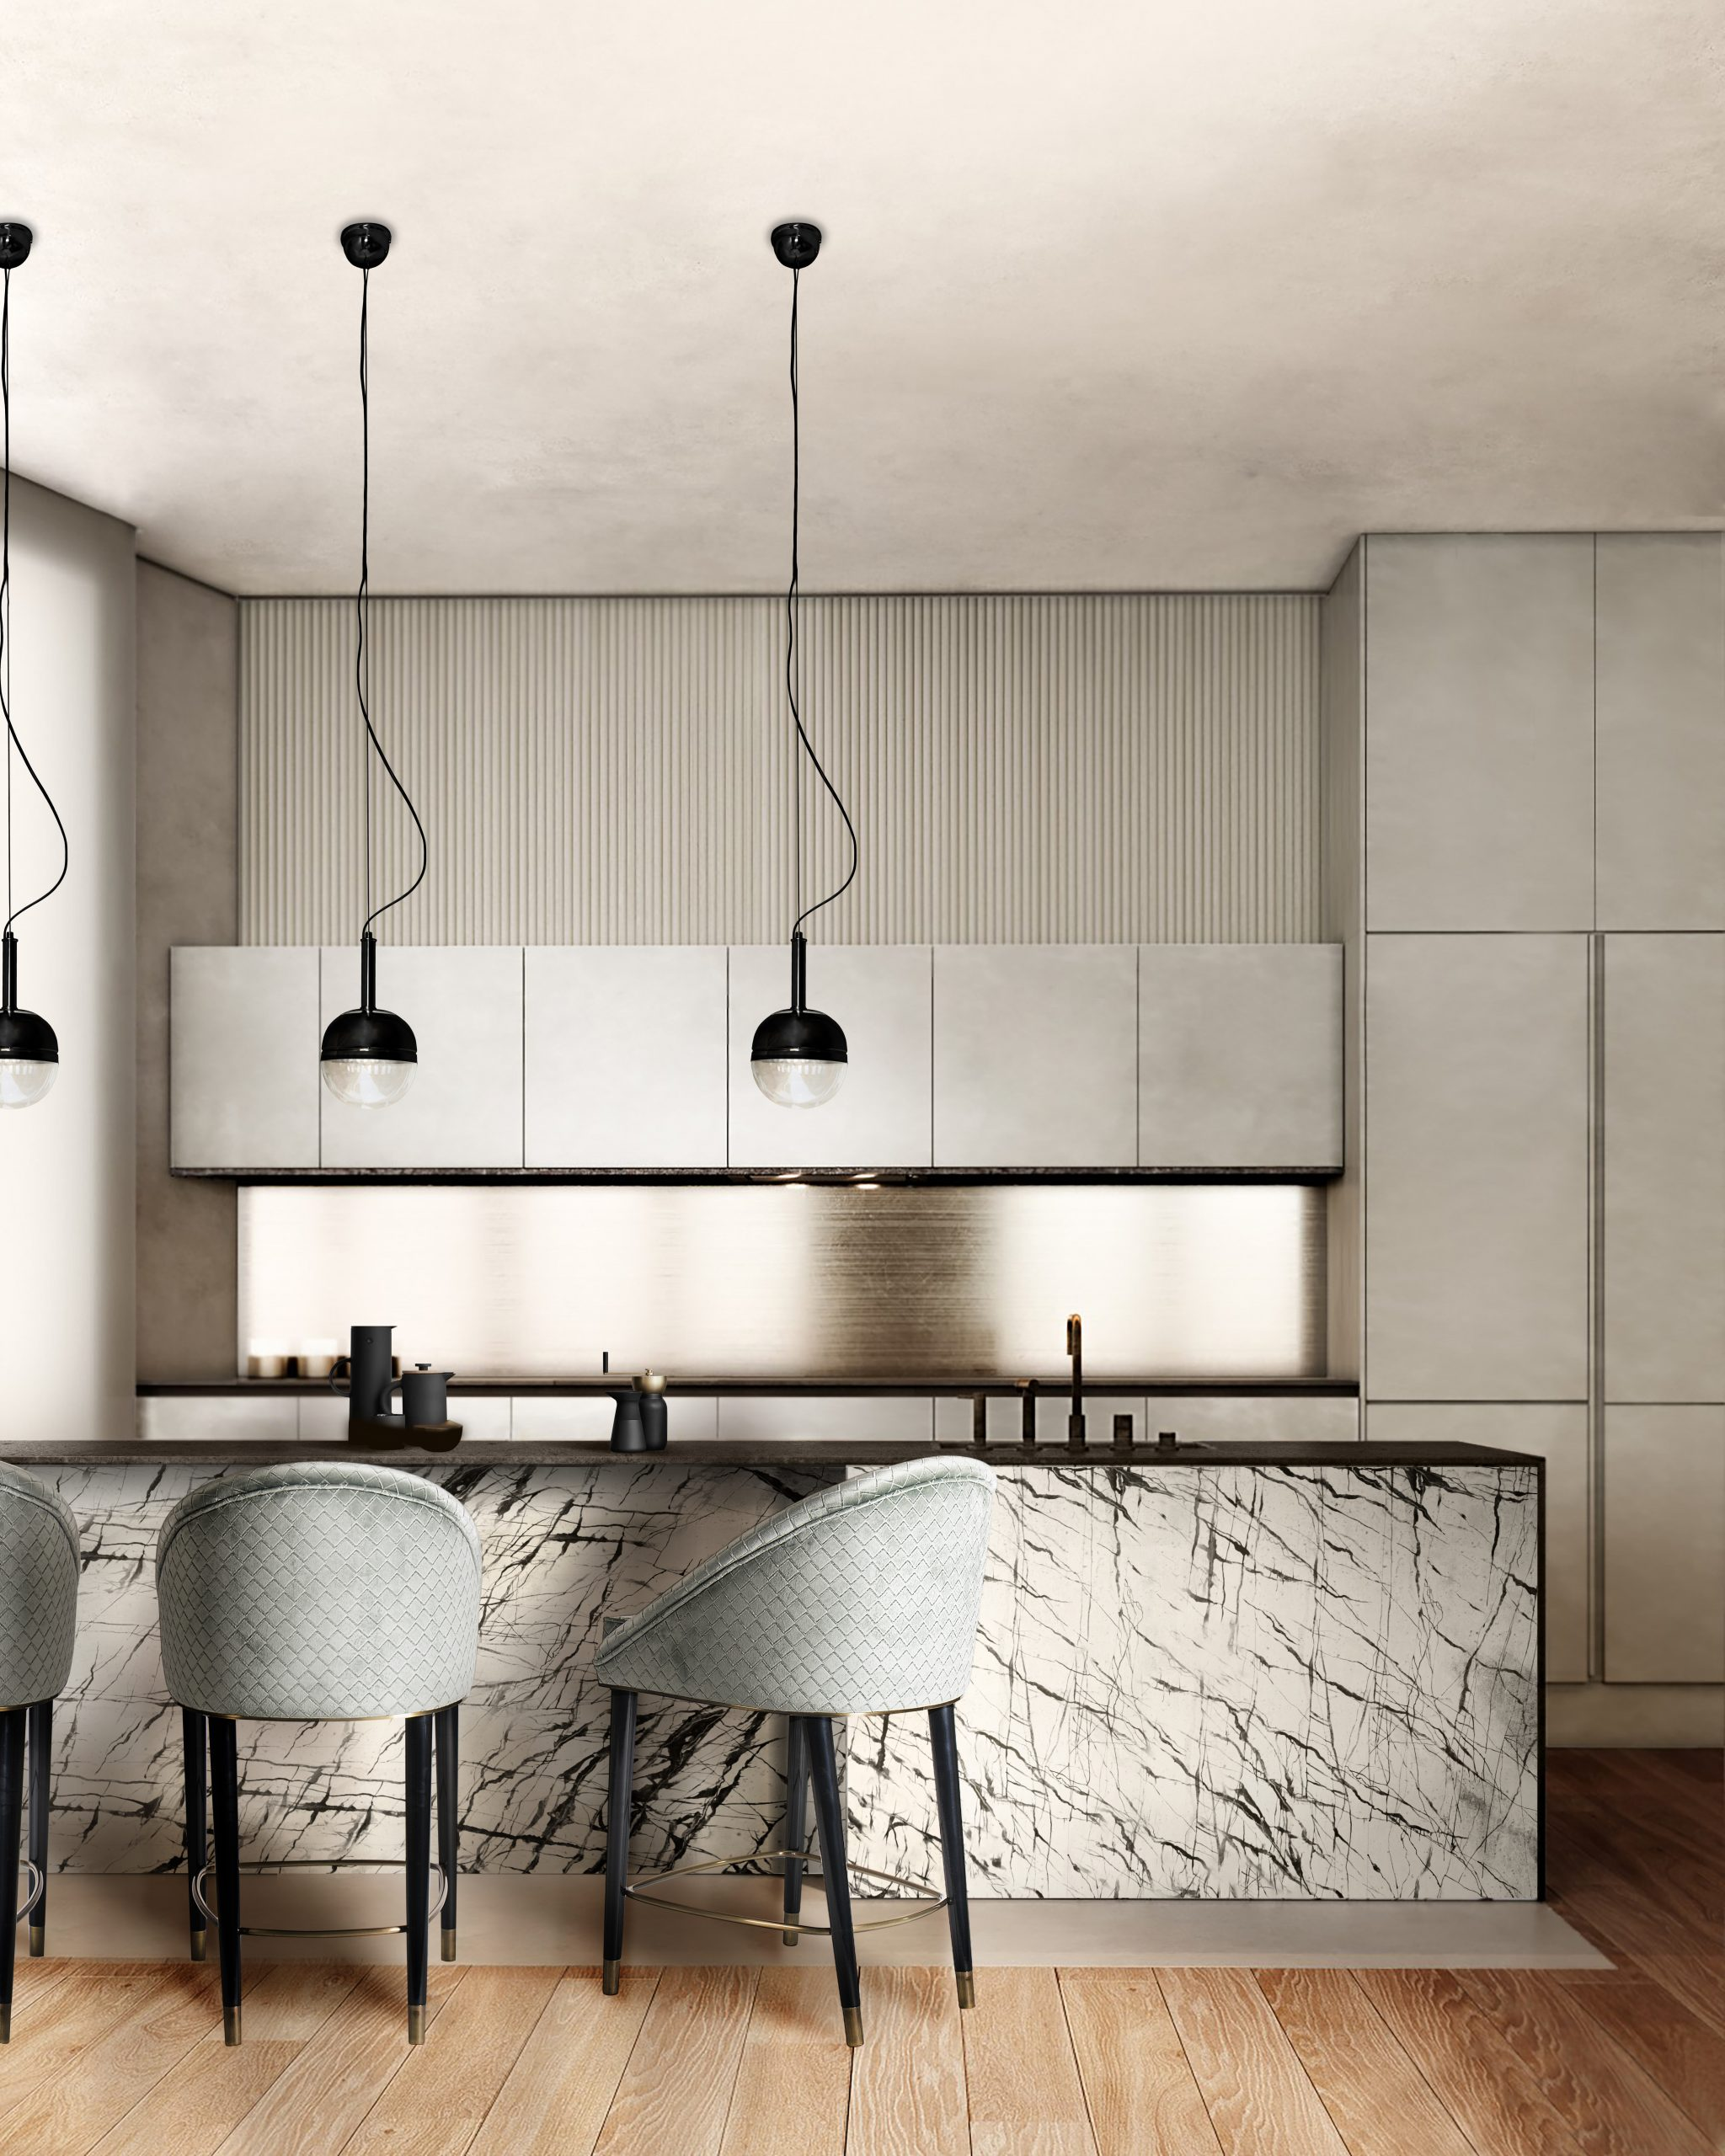 20 Counter Stools To Help You Create Your Dream Kitchen counter stools 20 Counter Stools To Help You Create Your Dream Kitchen kitchen malay counter niku pendant scaled